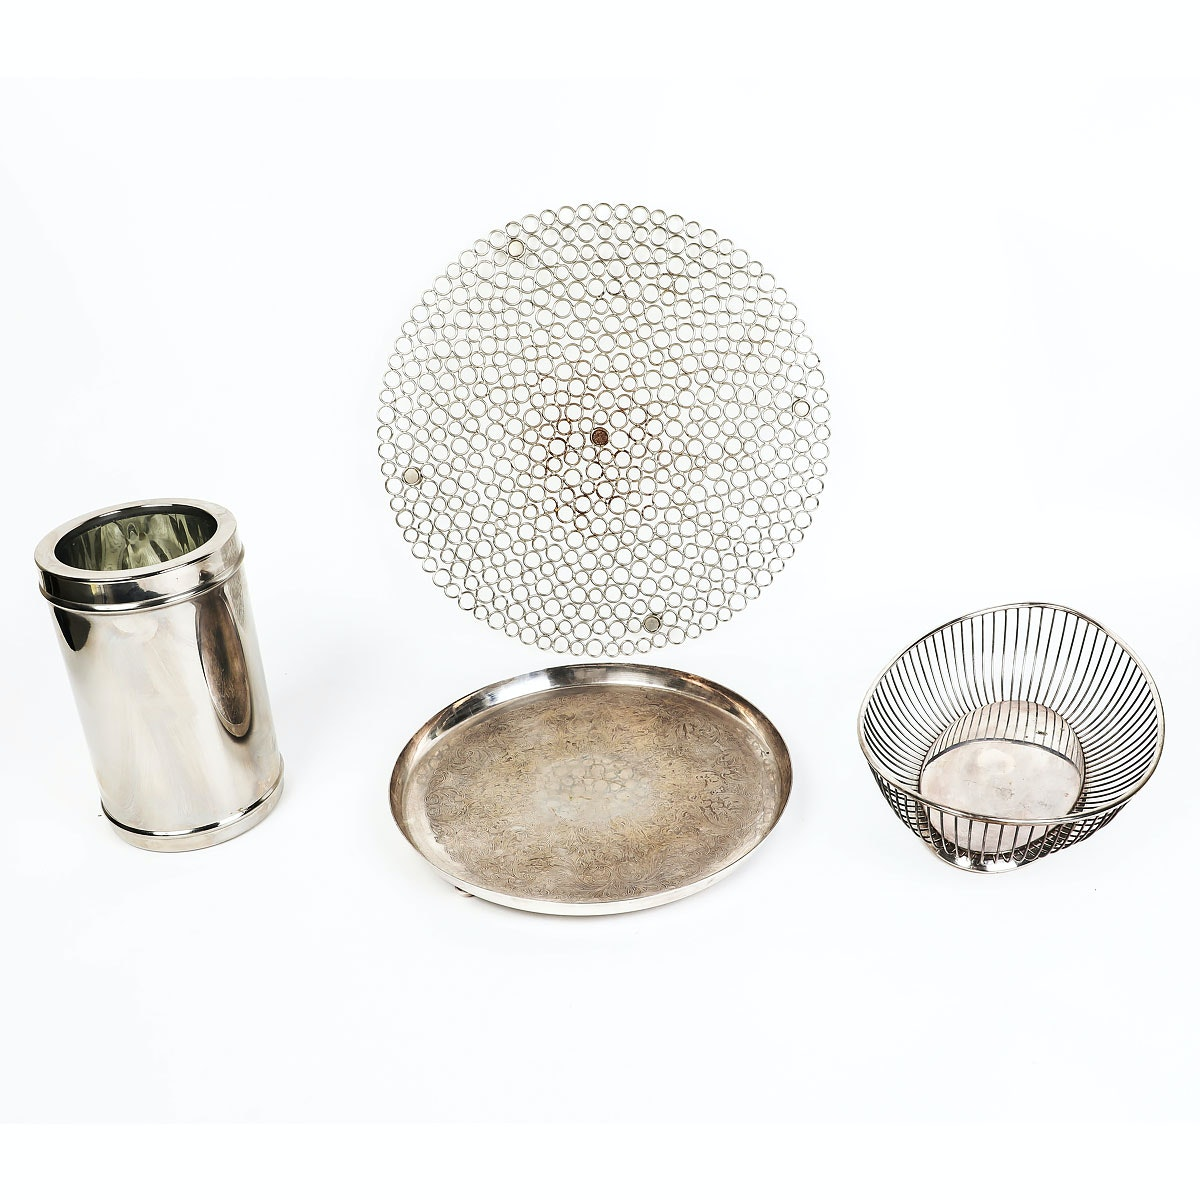 Assortment of Silver Tone and Silver Plate Tableware